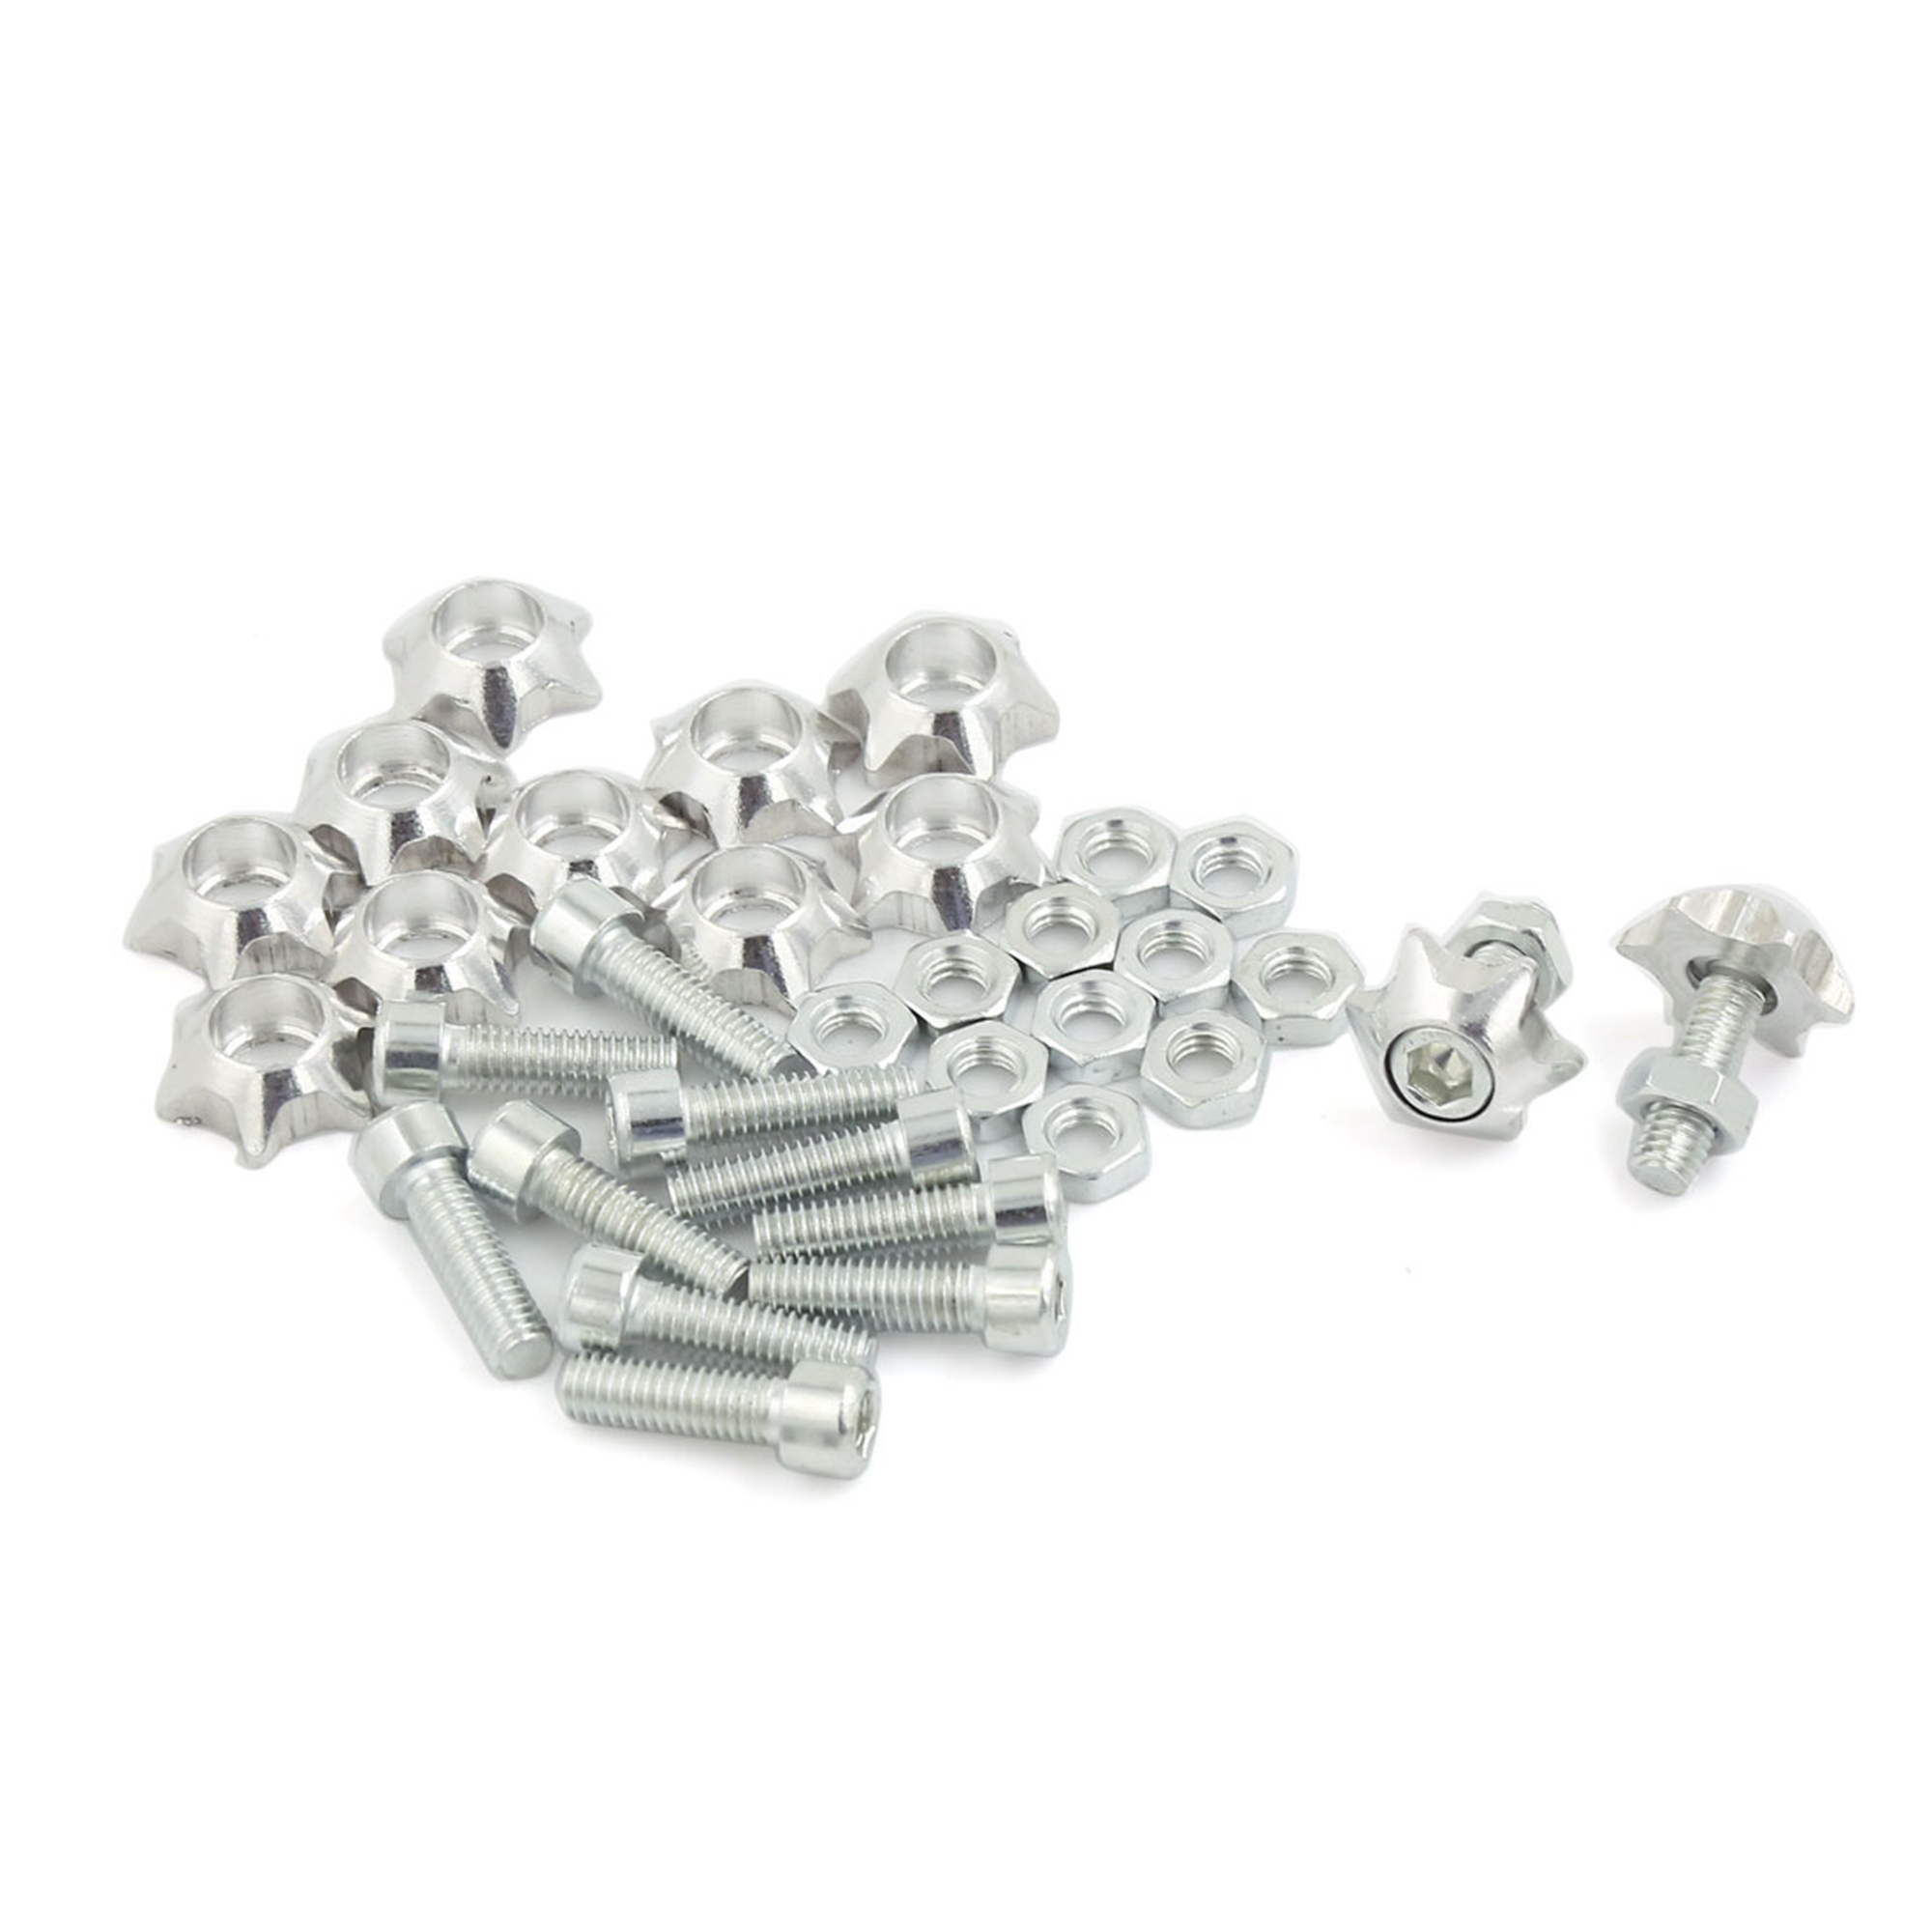 12 Pcs 6mm Dia Star Shape Cap Car License Number Plate Bolts Screw Sliver Tone